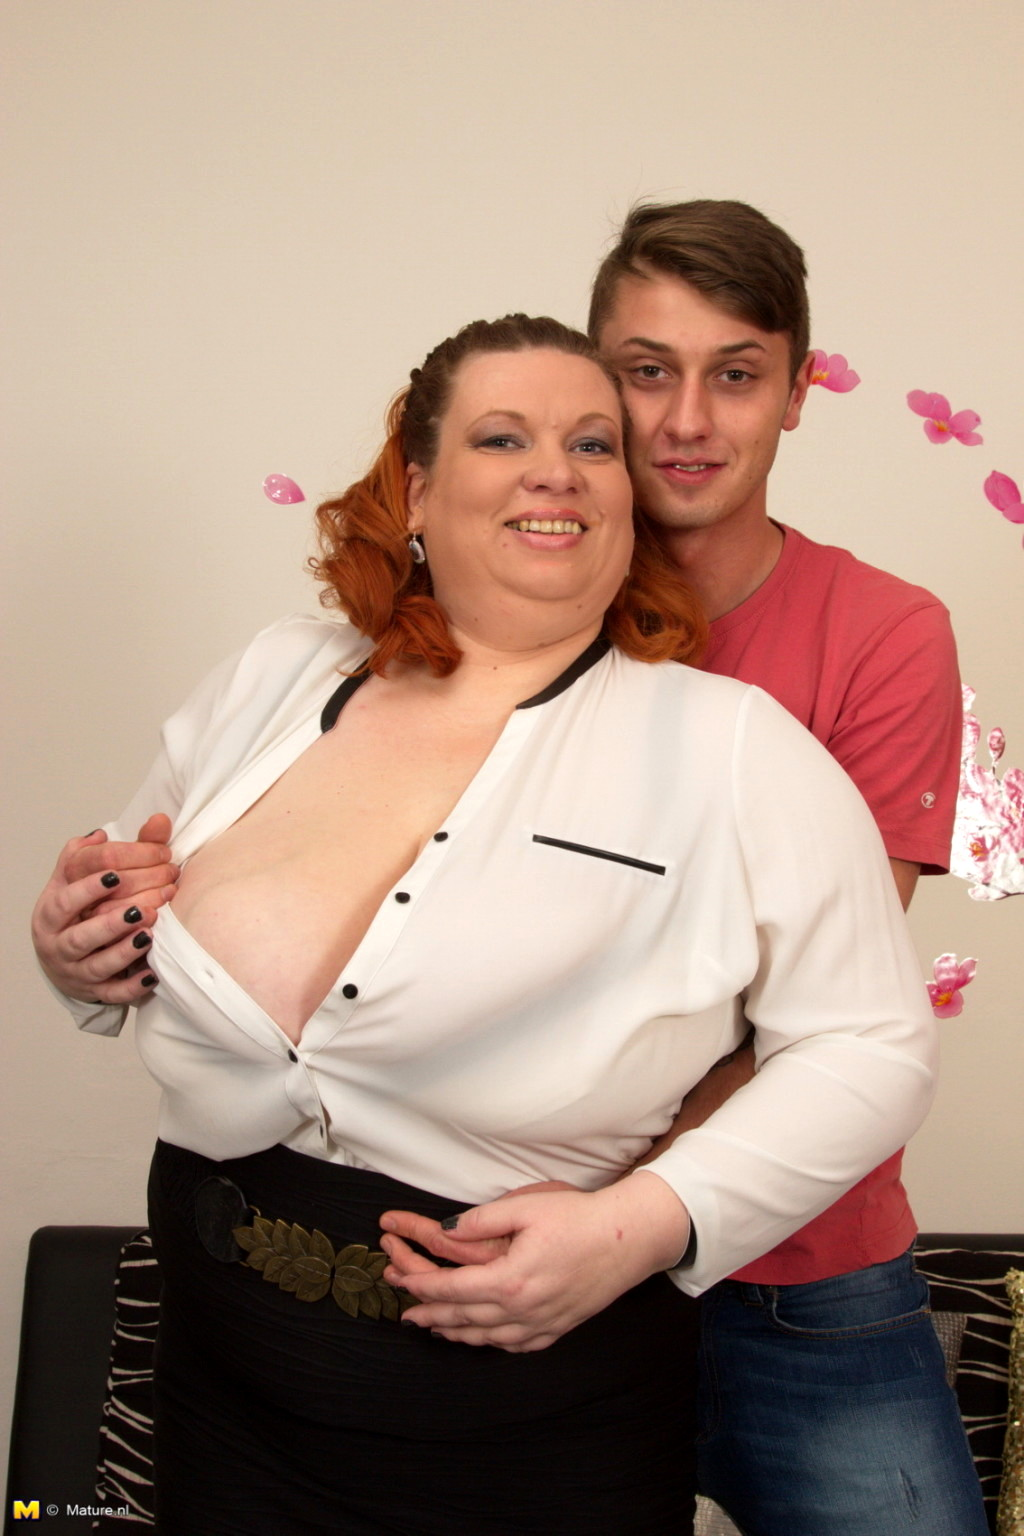 maturenl model dawn mom and son gallery yes porn pics xxx